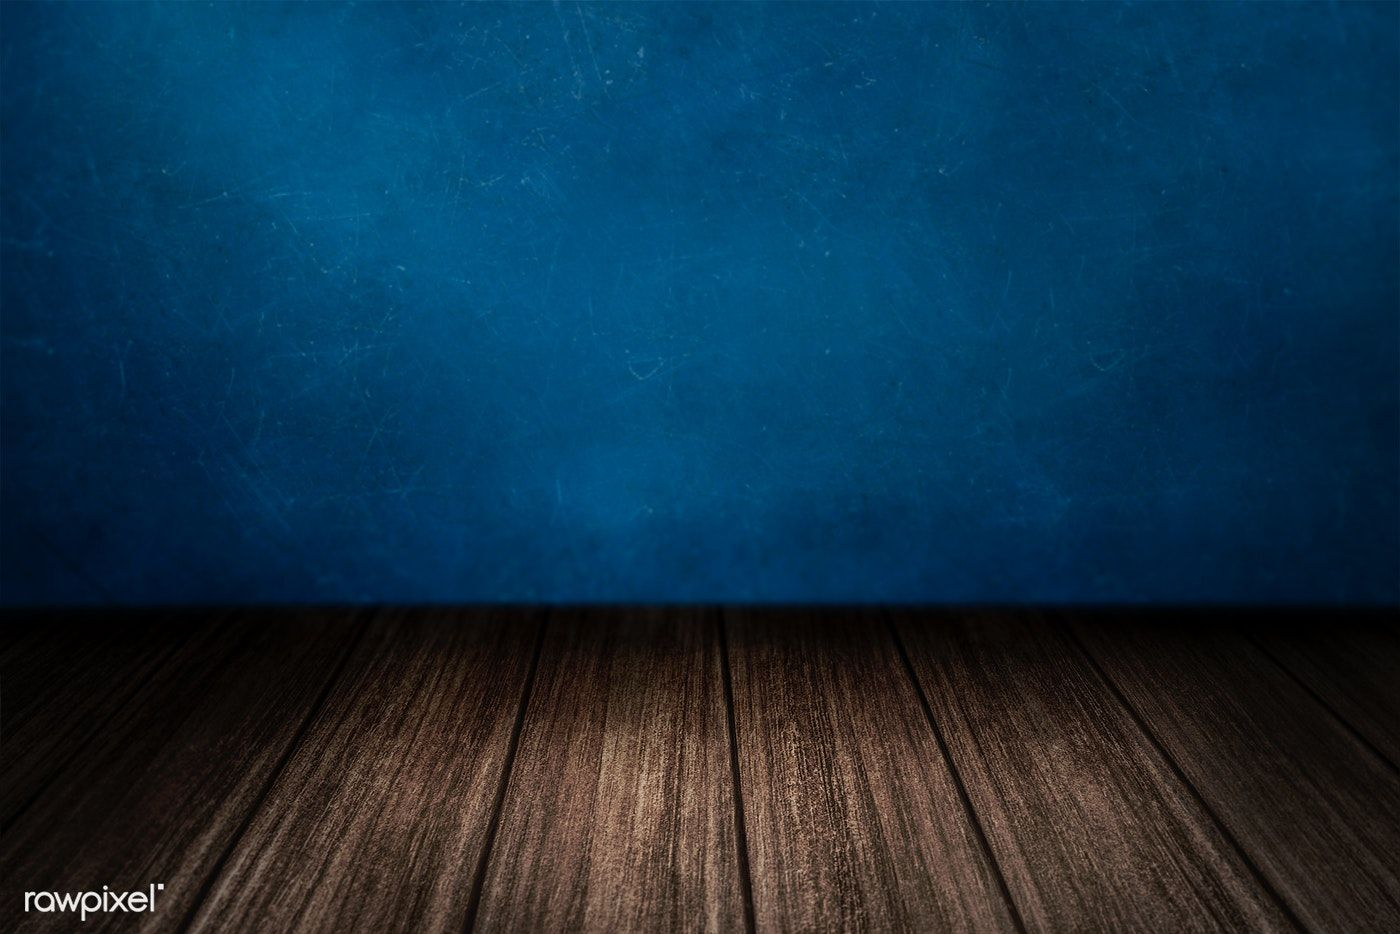 Wooden Floor With Blue Wall Product Background Free Image By